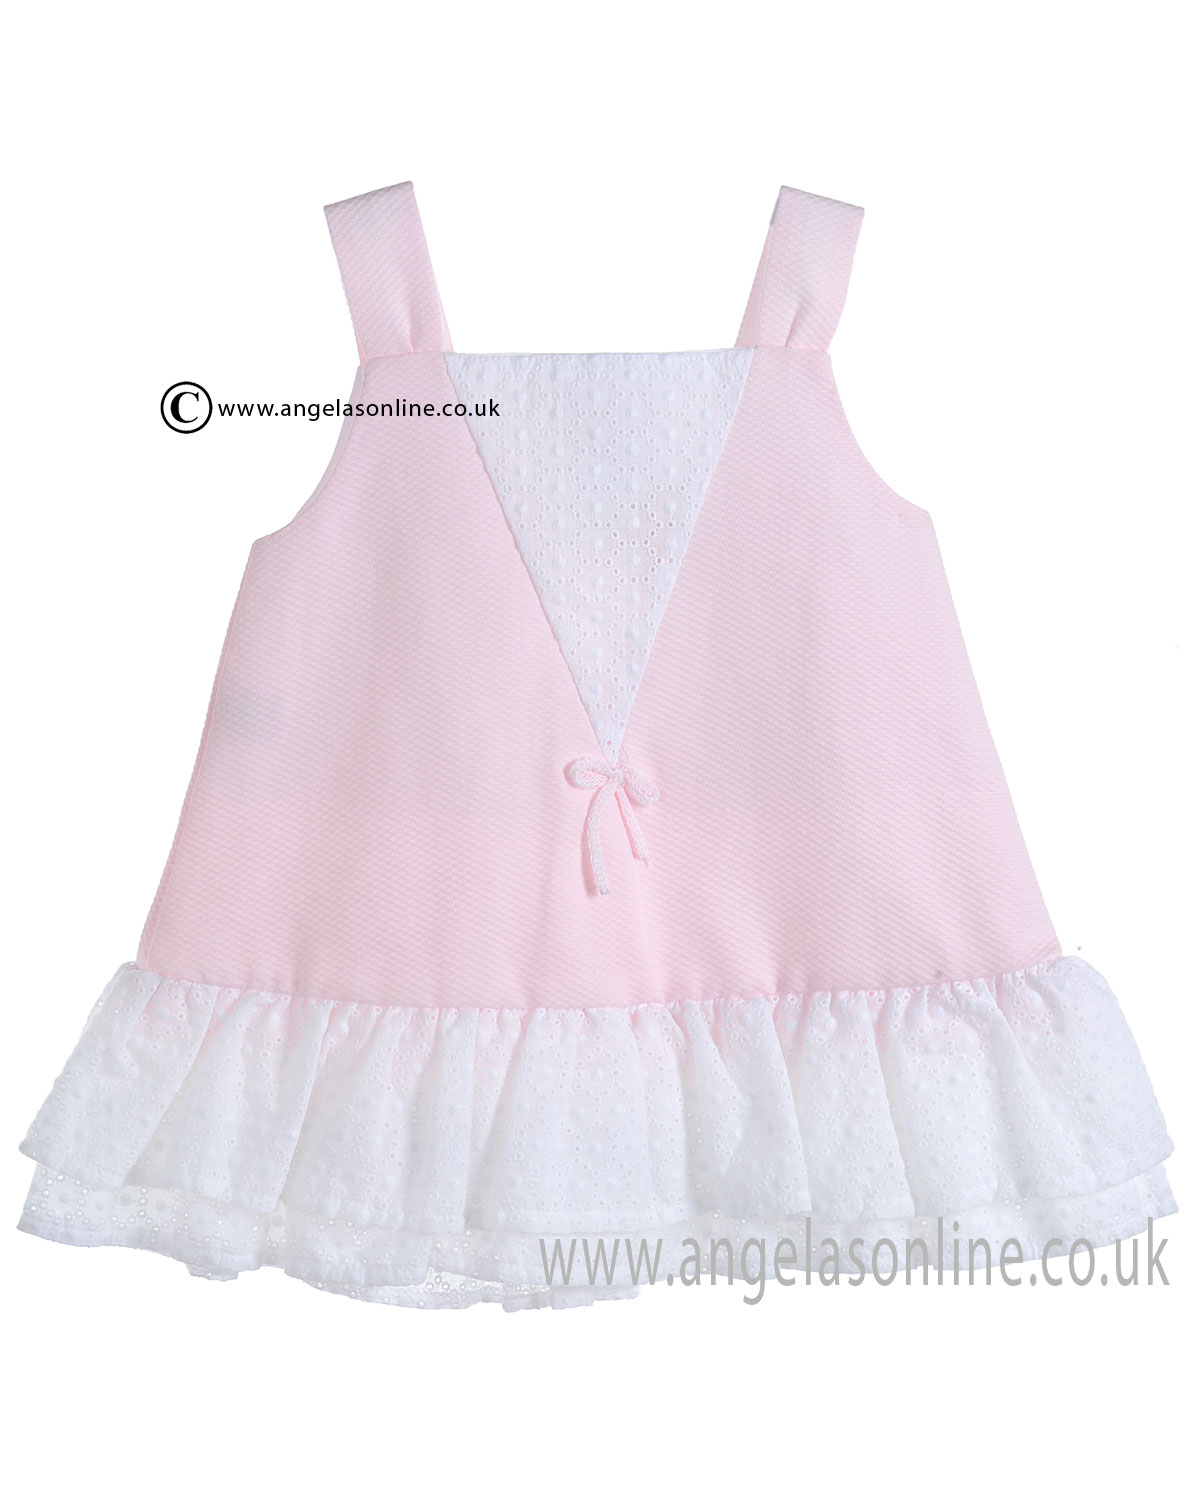 Mebi Sale Baby Girls Pale Pink and White Summer Dress 1386/057